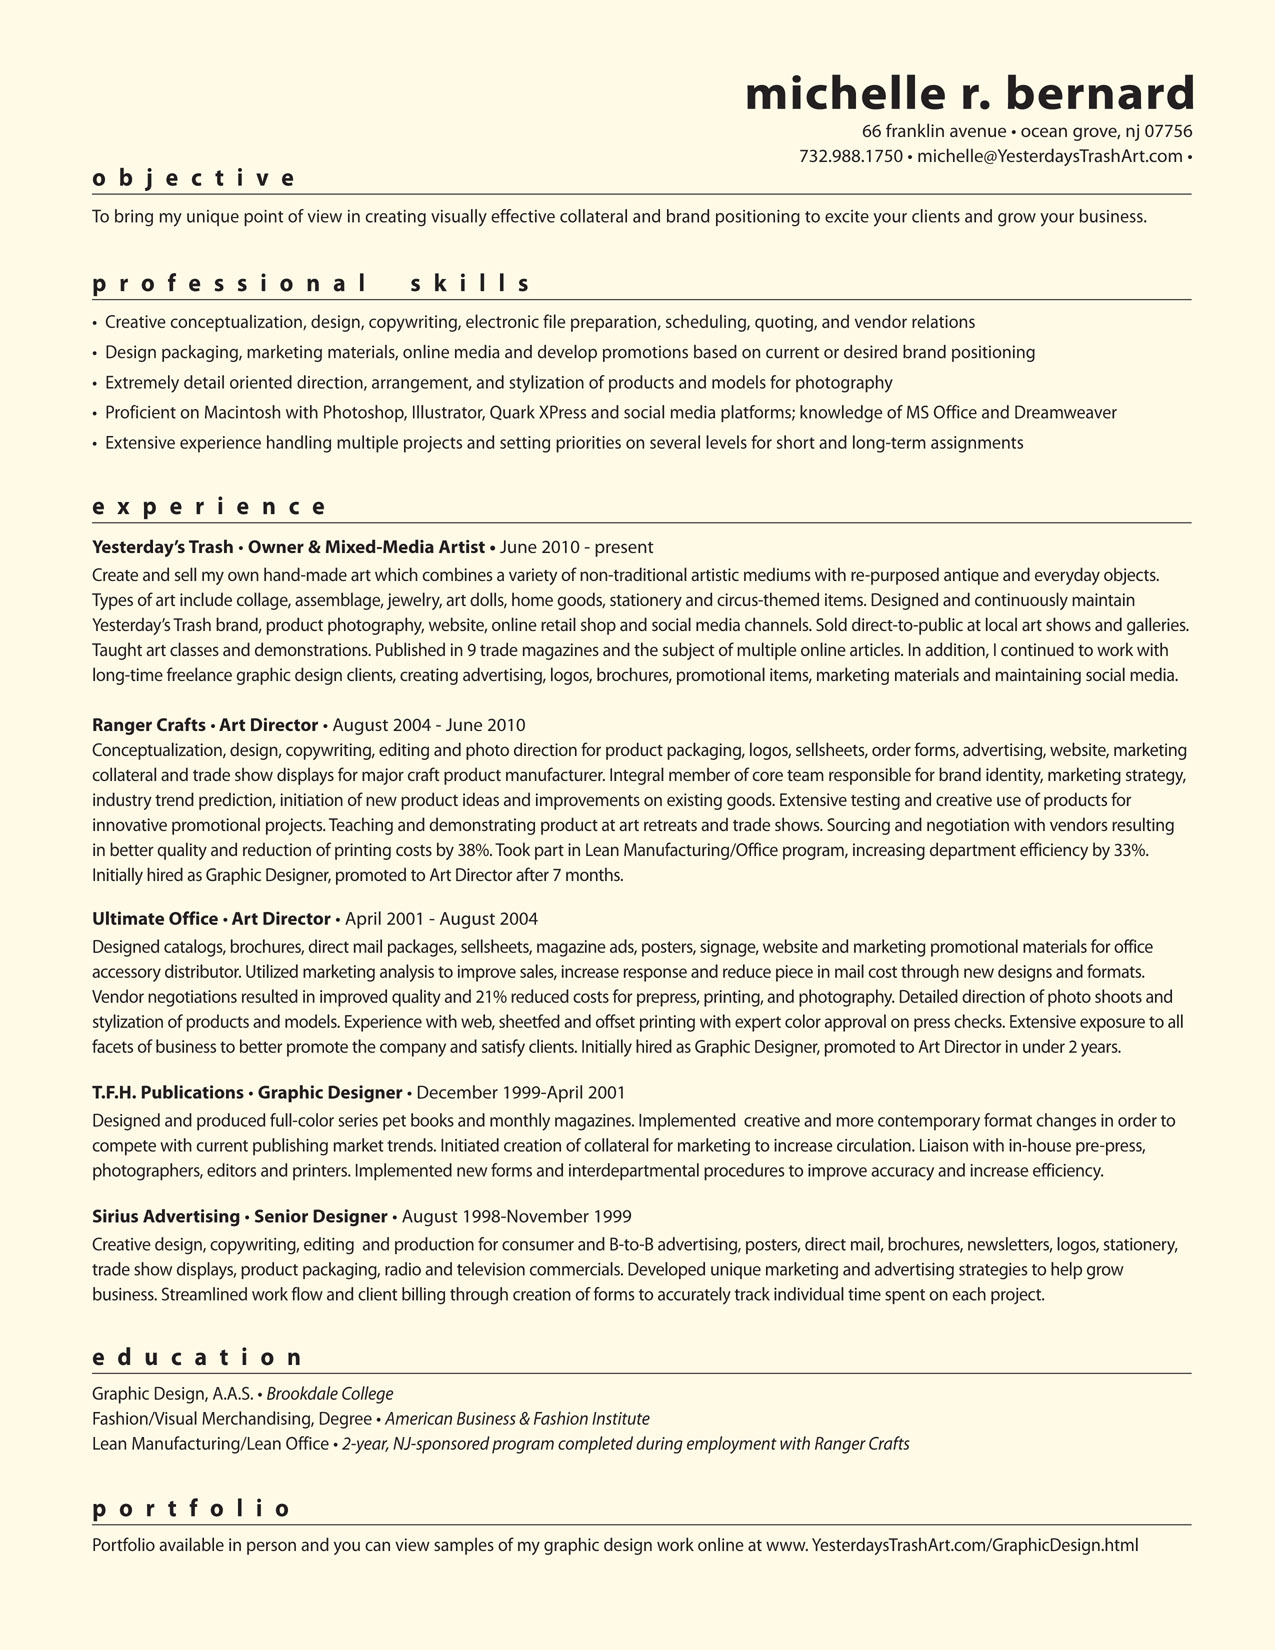 resume working independently resume format examples resume working independently taskforce community agency home resume michelle r bernard my resume covers my pertinent